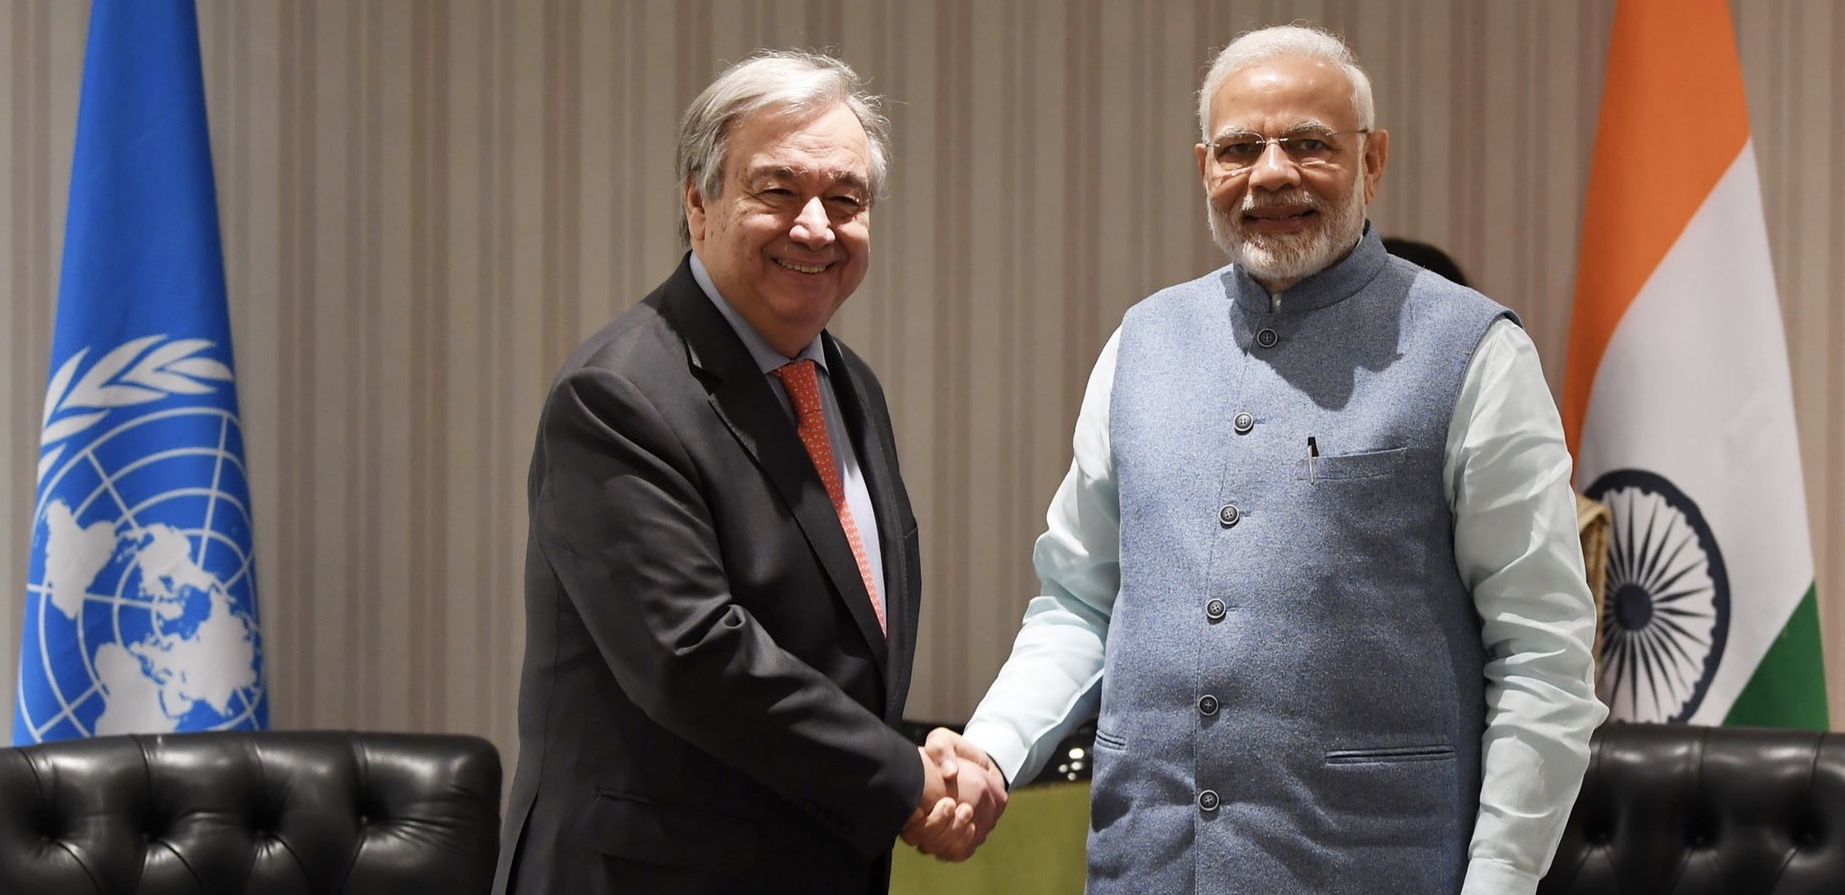 Prime Minister meets UN Secretary-General António Guterres on the sidelines of the G20 Summit in Buenos Aires